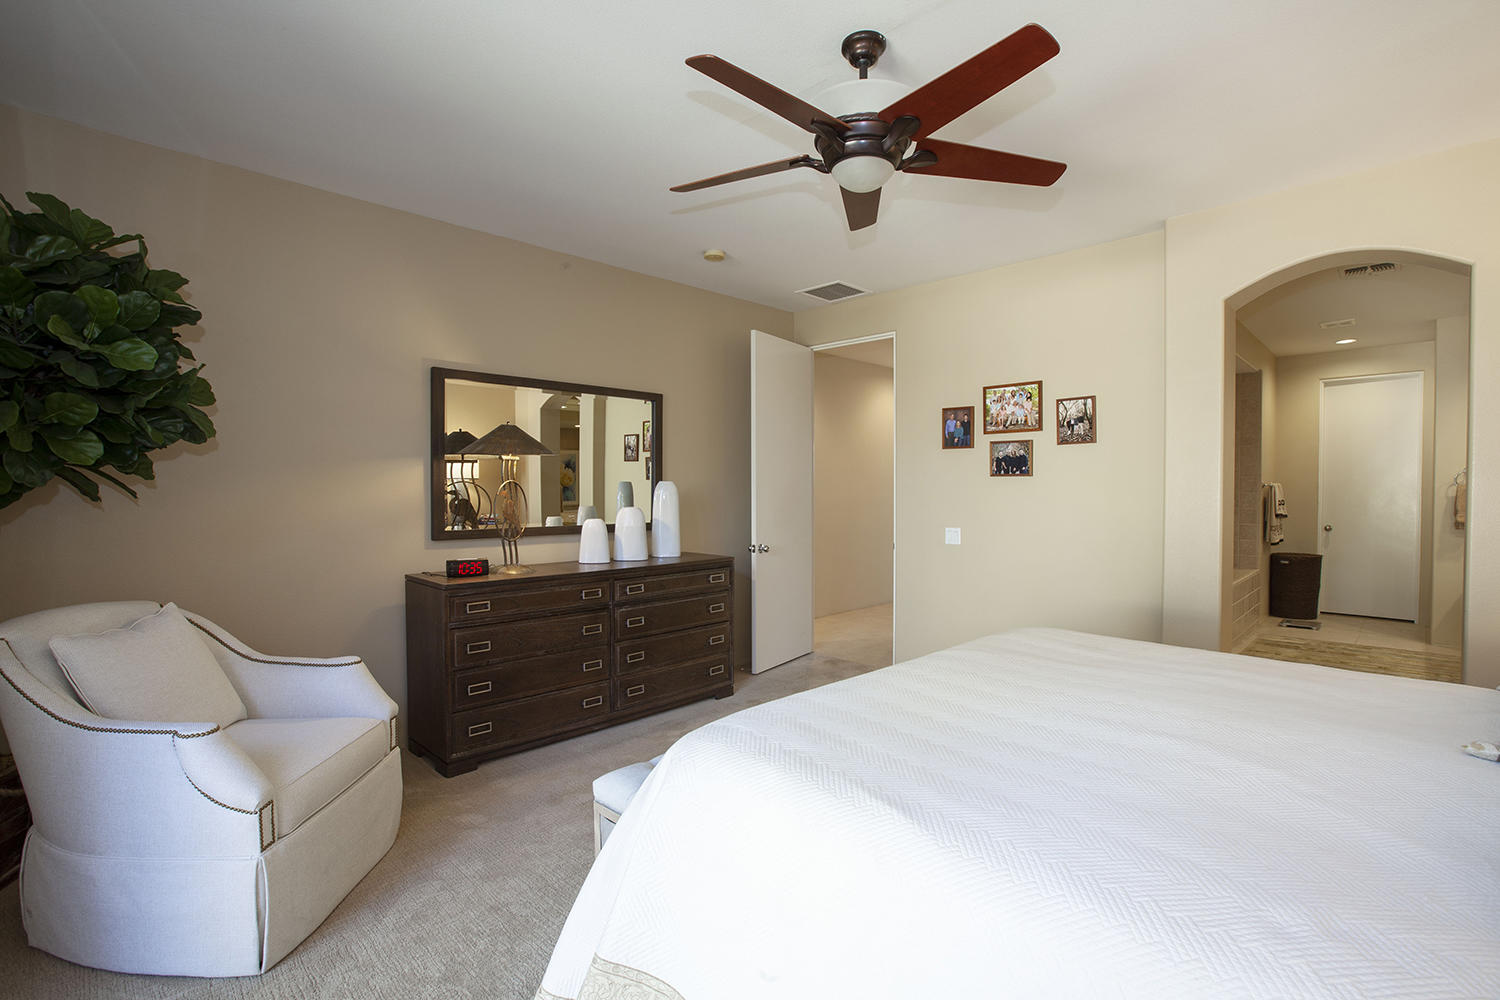 48190 Casita Drive, La Quinta, California 92253, 3 Bedrooms Bedrooms, ,3 BathroomsBathrooms,Residential,For Sale,48190 Casita Drive,219041586